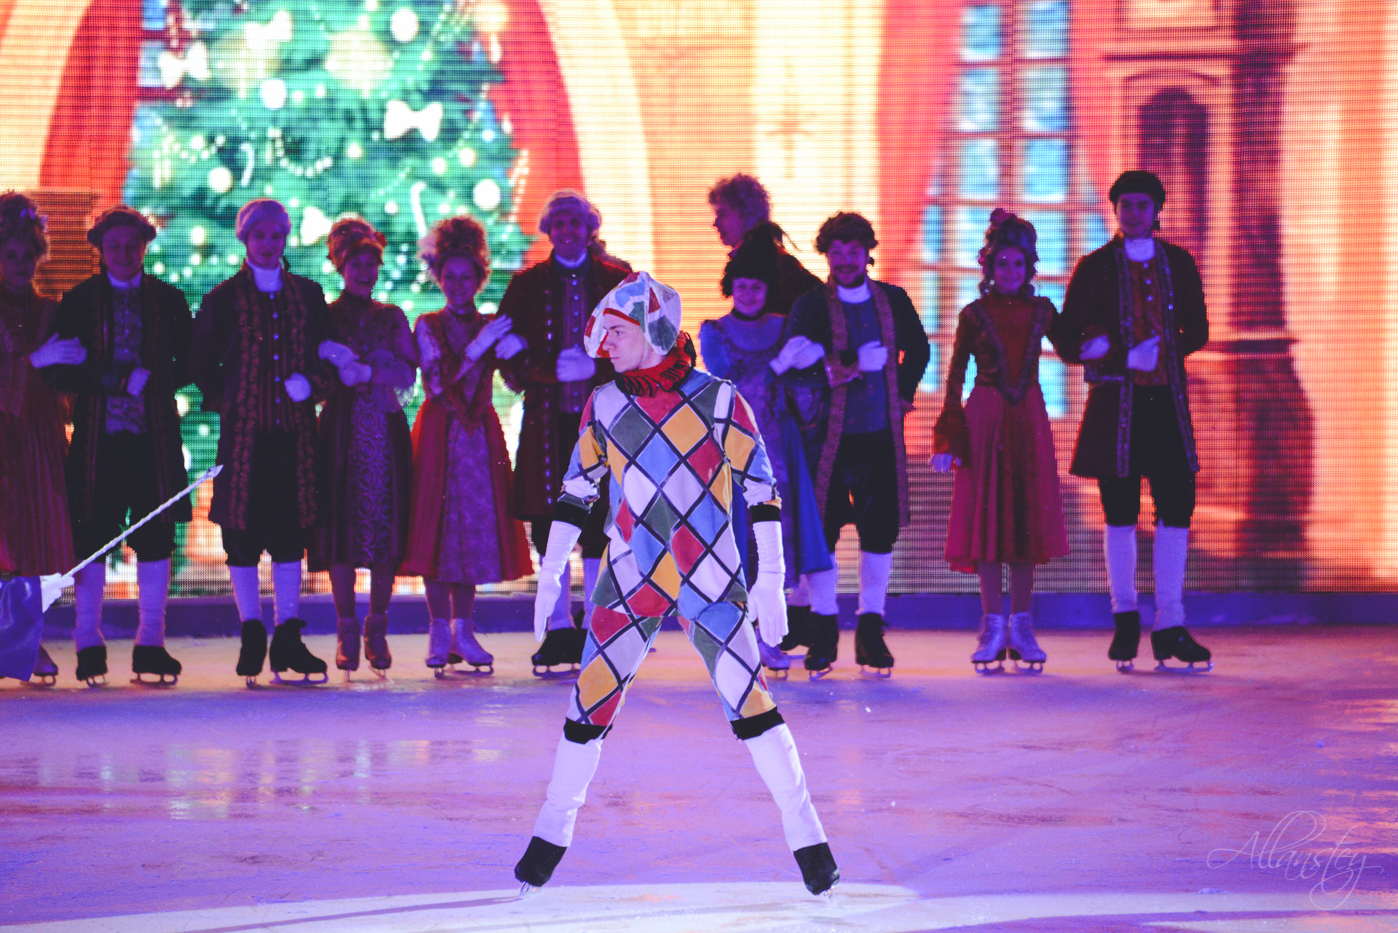 Nutcracker figure sakating ice show